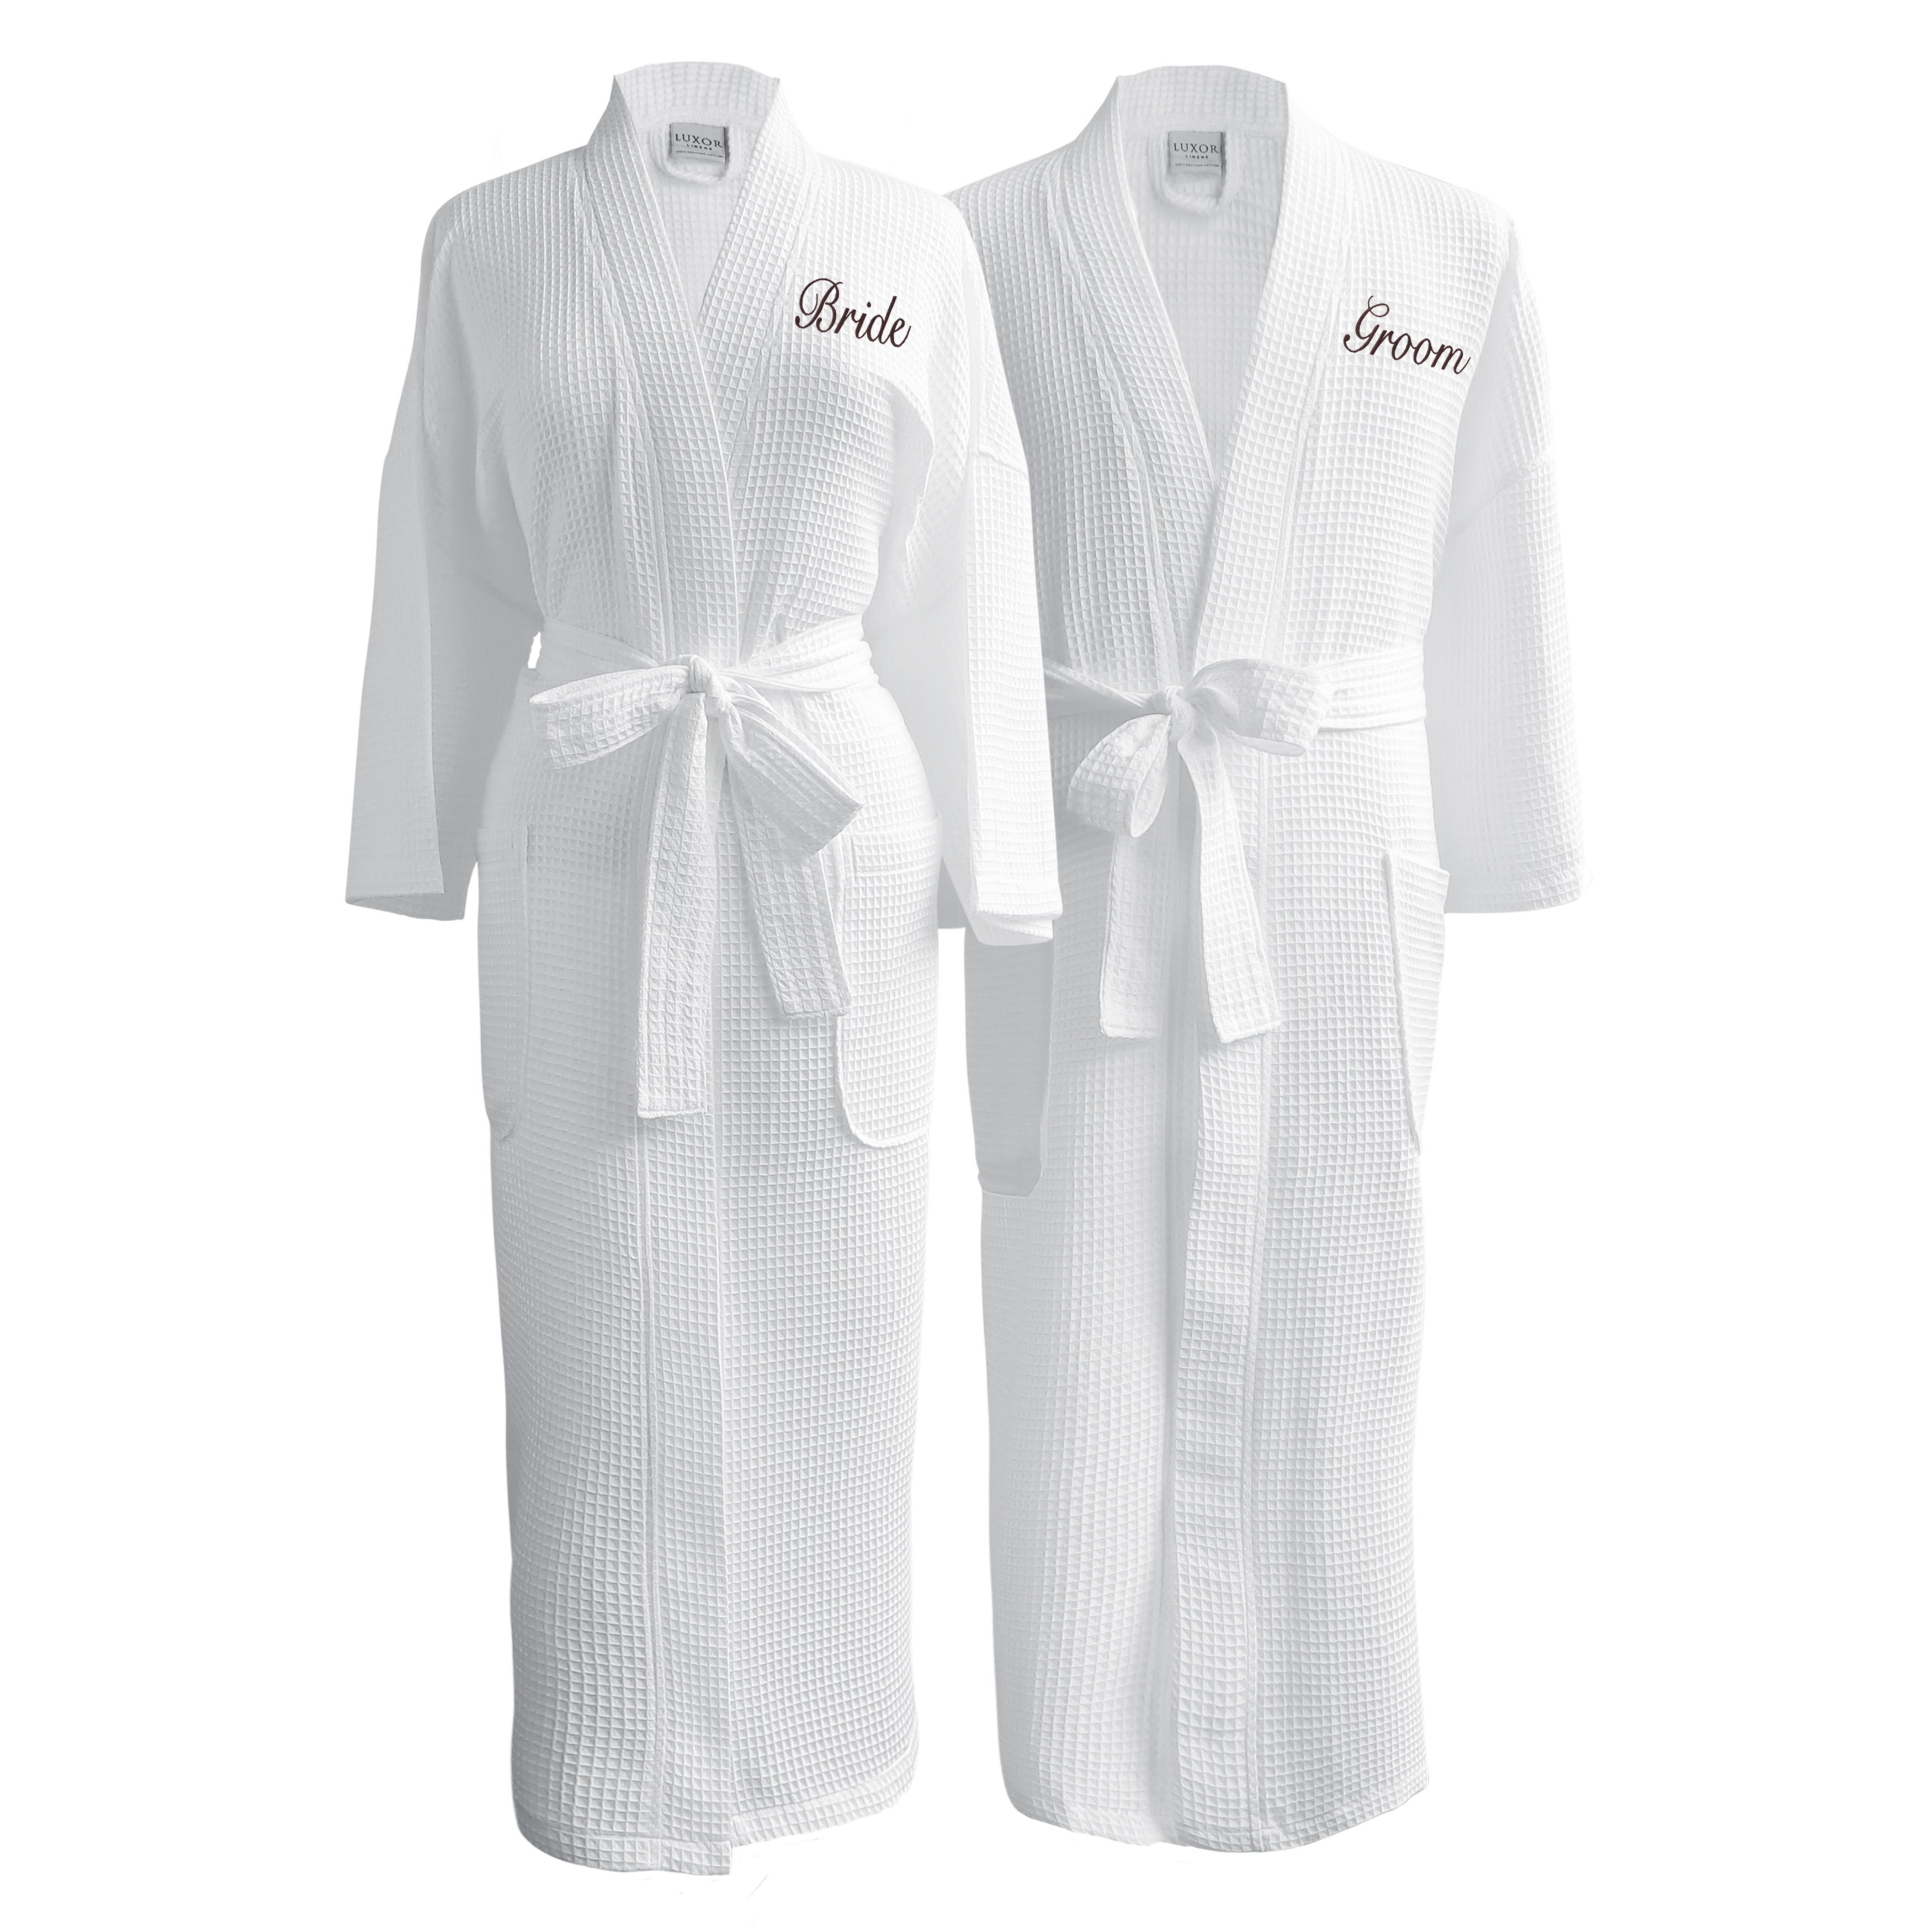 62be118dfb Conrad Egyptian Cotton Bride   Groom Waffle Spa Robe Set (Gift Packaging).  by Luxor Linens